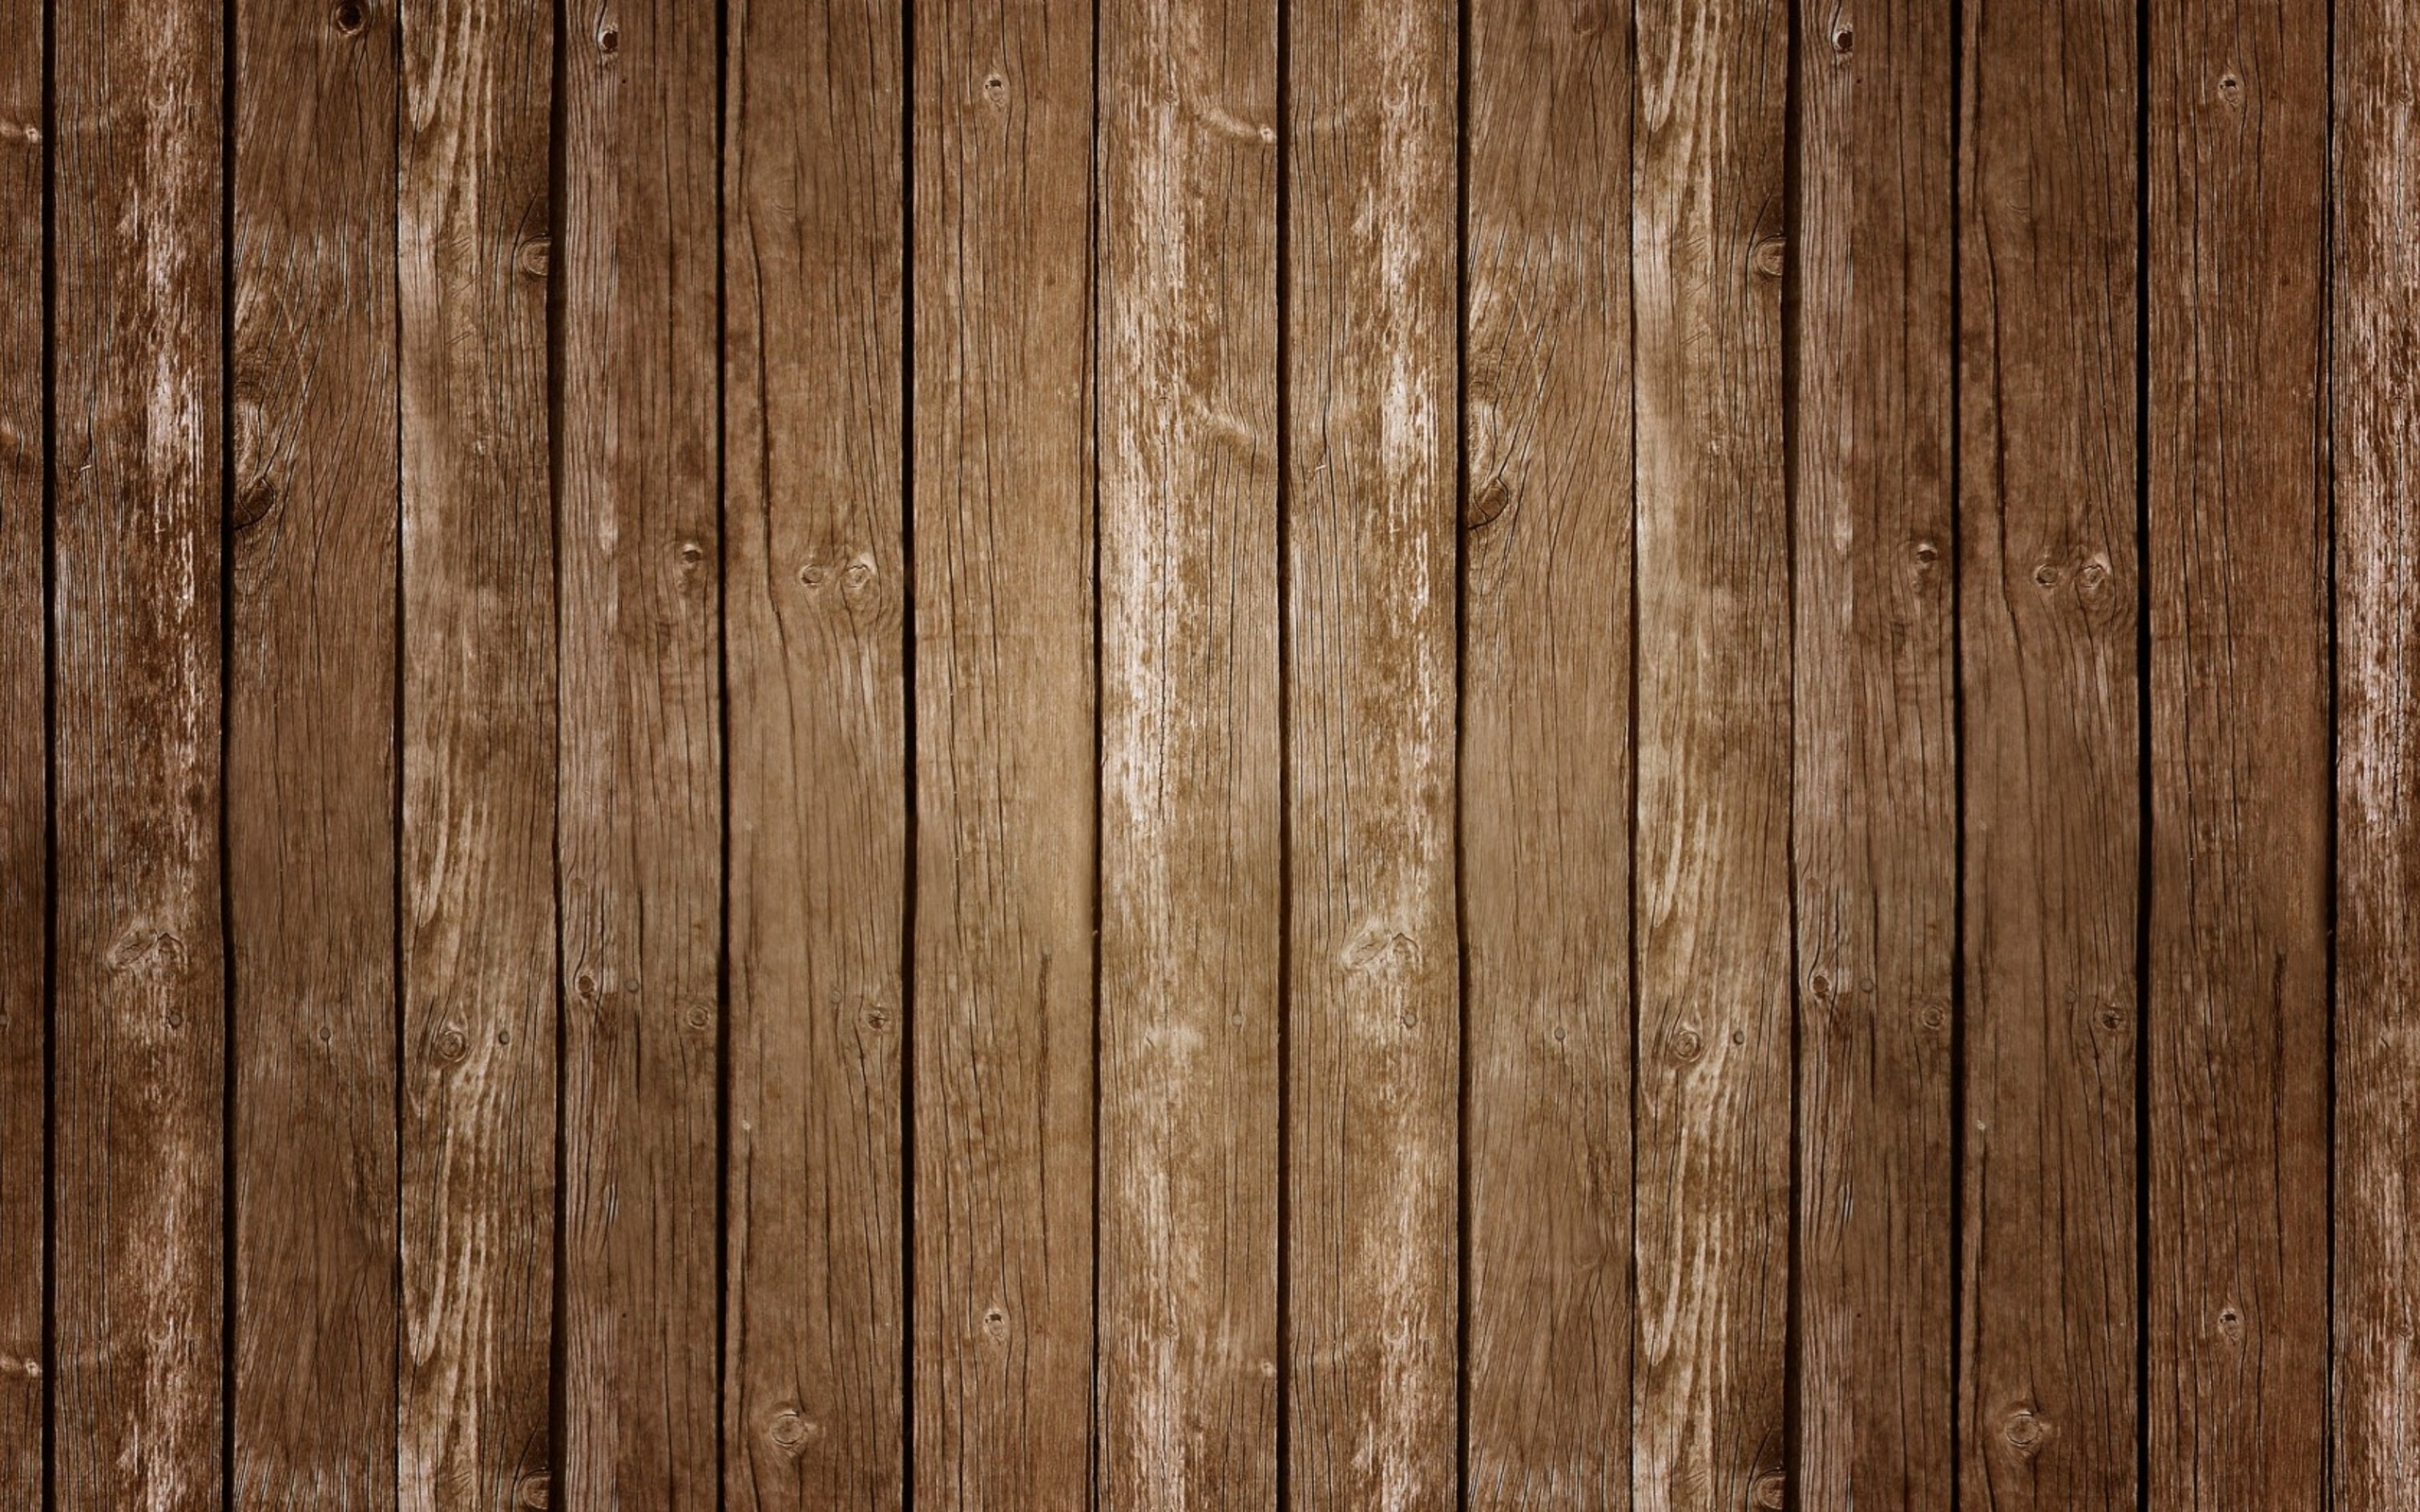 Wood Grain Wallpaper android wallpaper: knock on wood